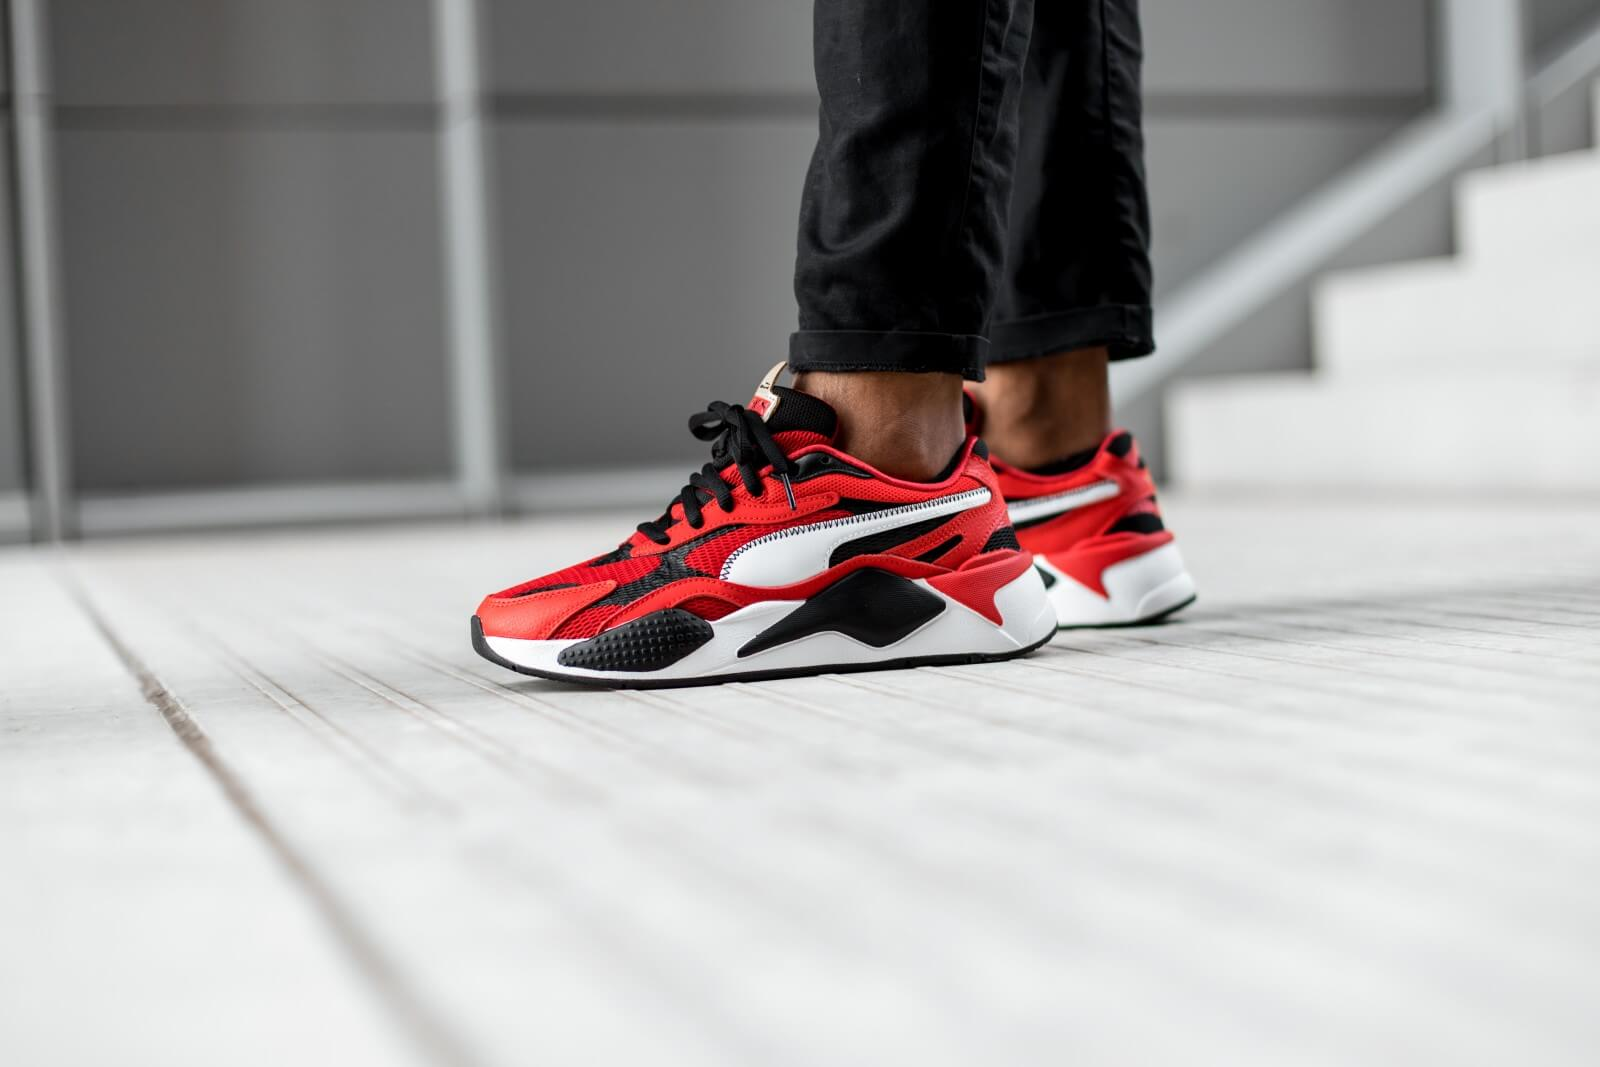 Puma RS-X CNY High Risk Red/White-Black - 373178-01